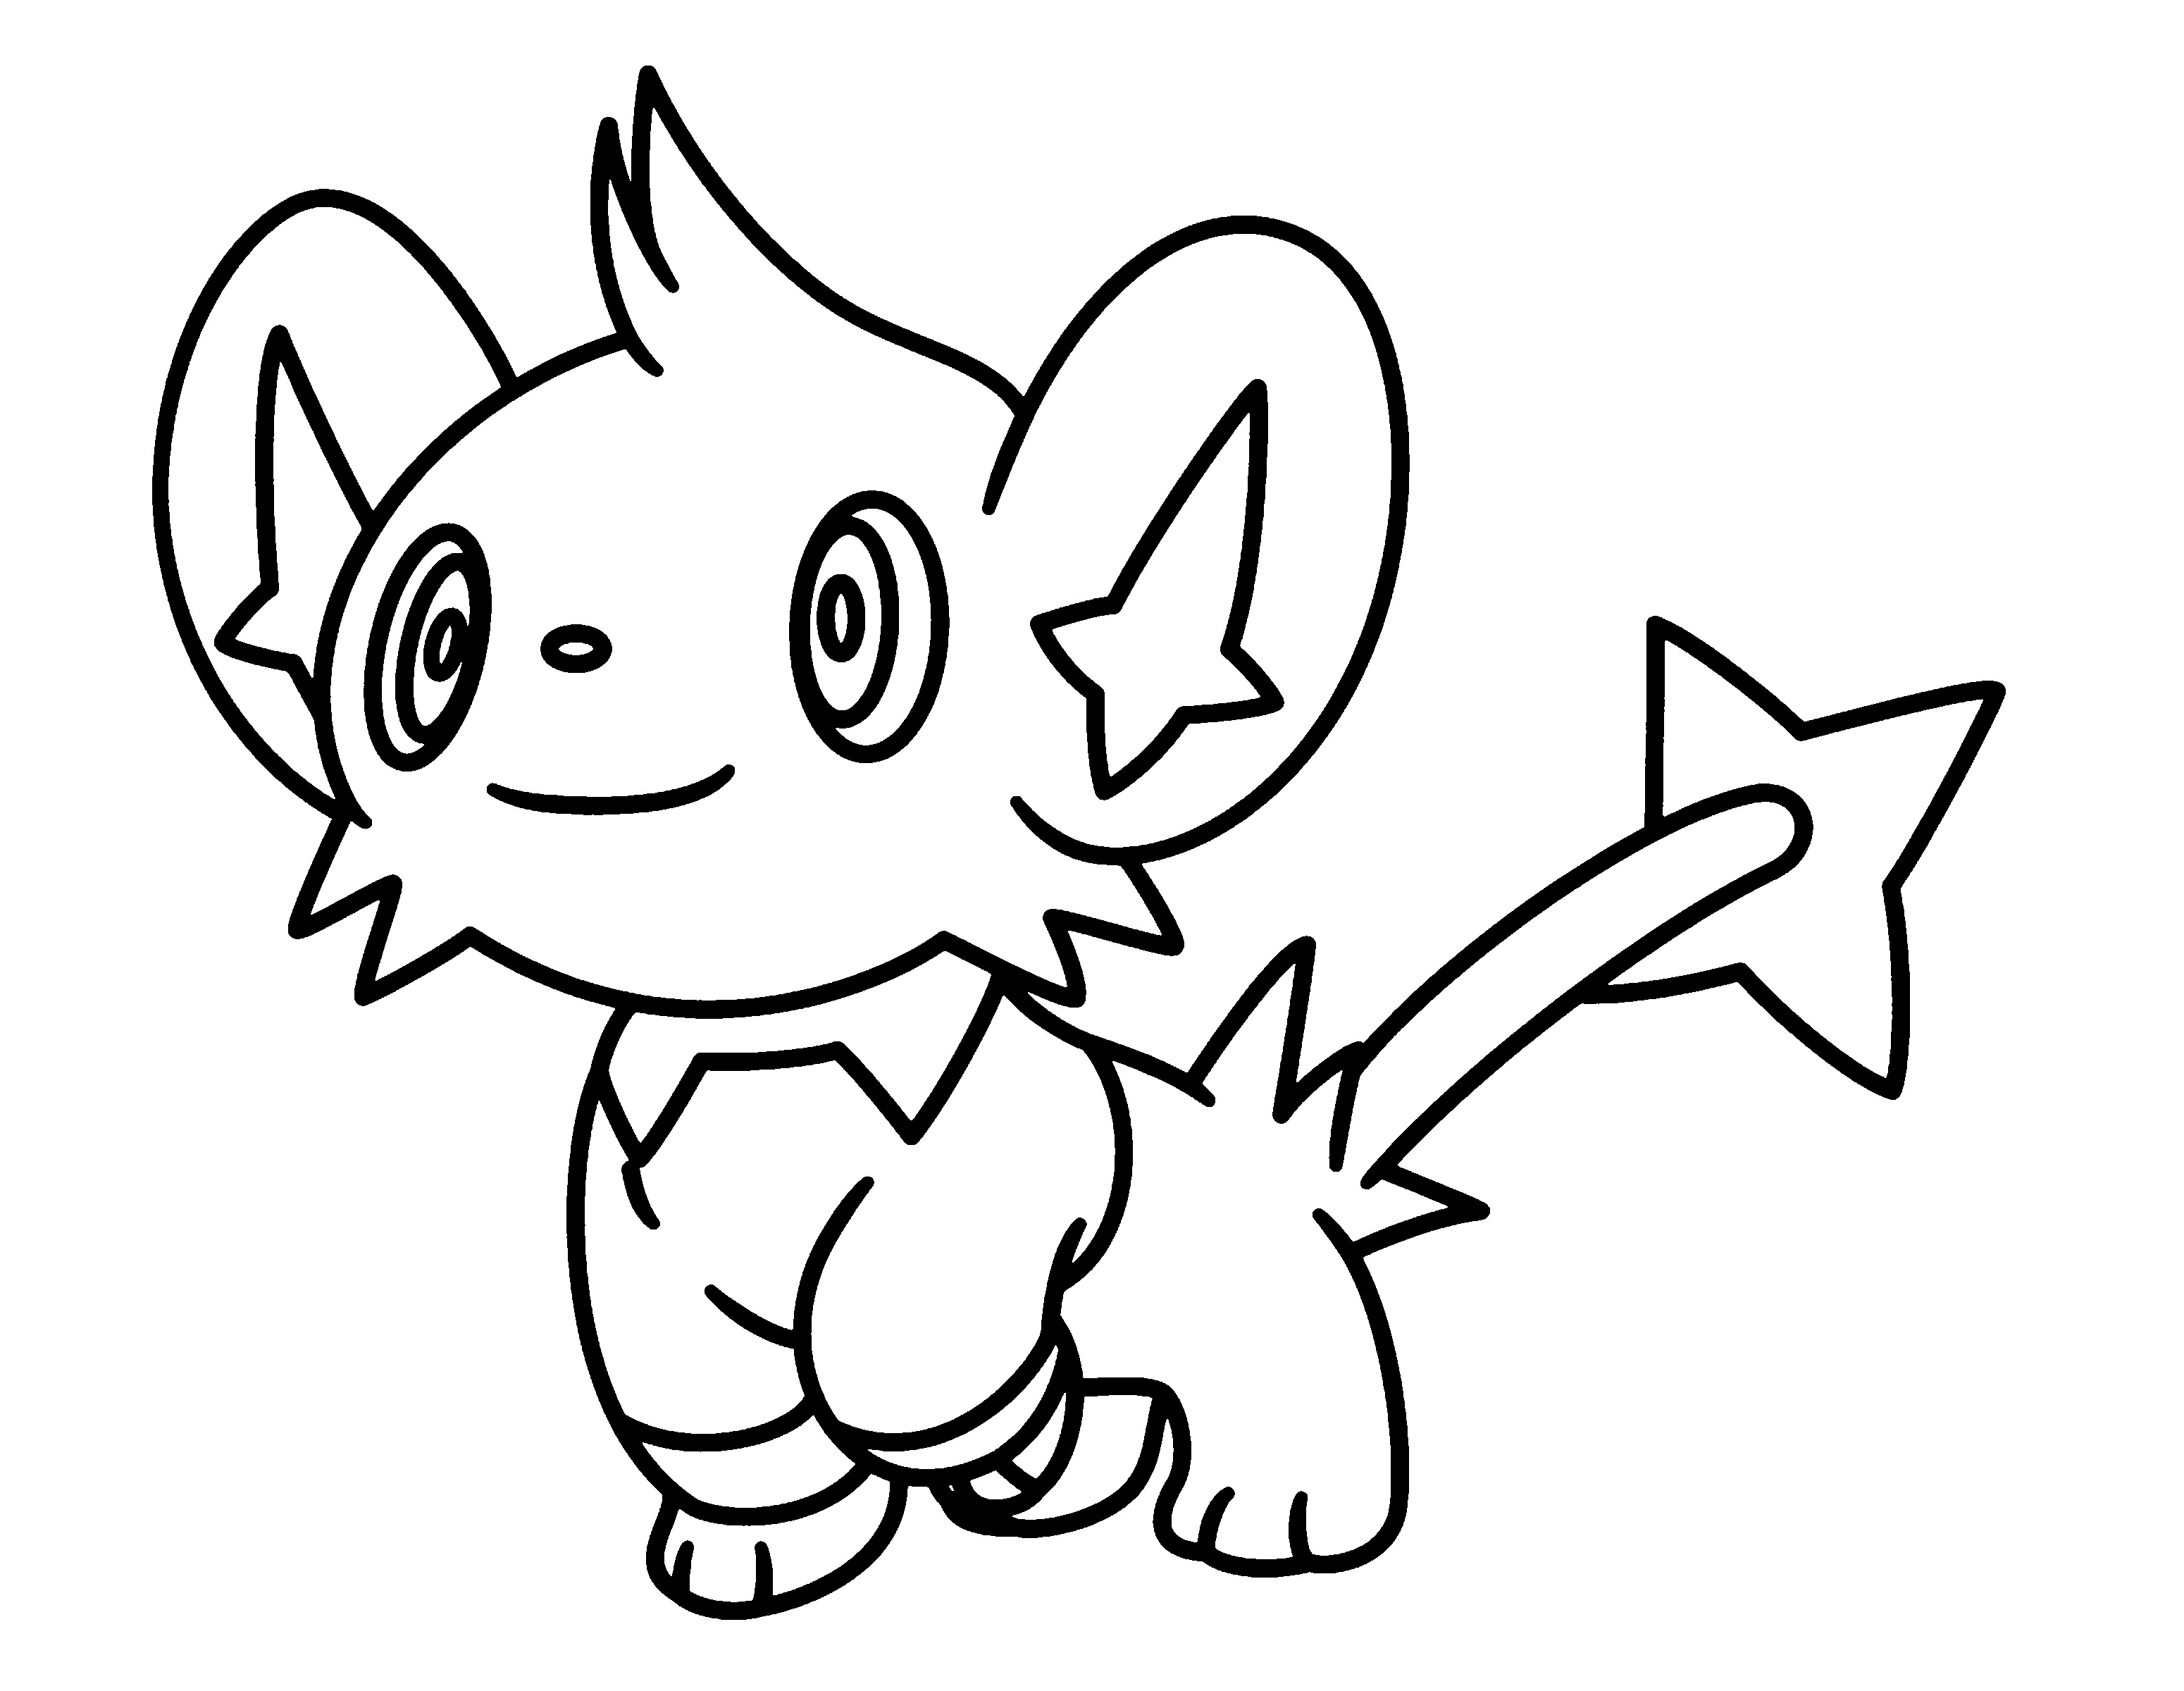 Coloring games of pokemon - Free Printable Pokemon Coloring Pages